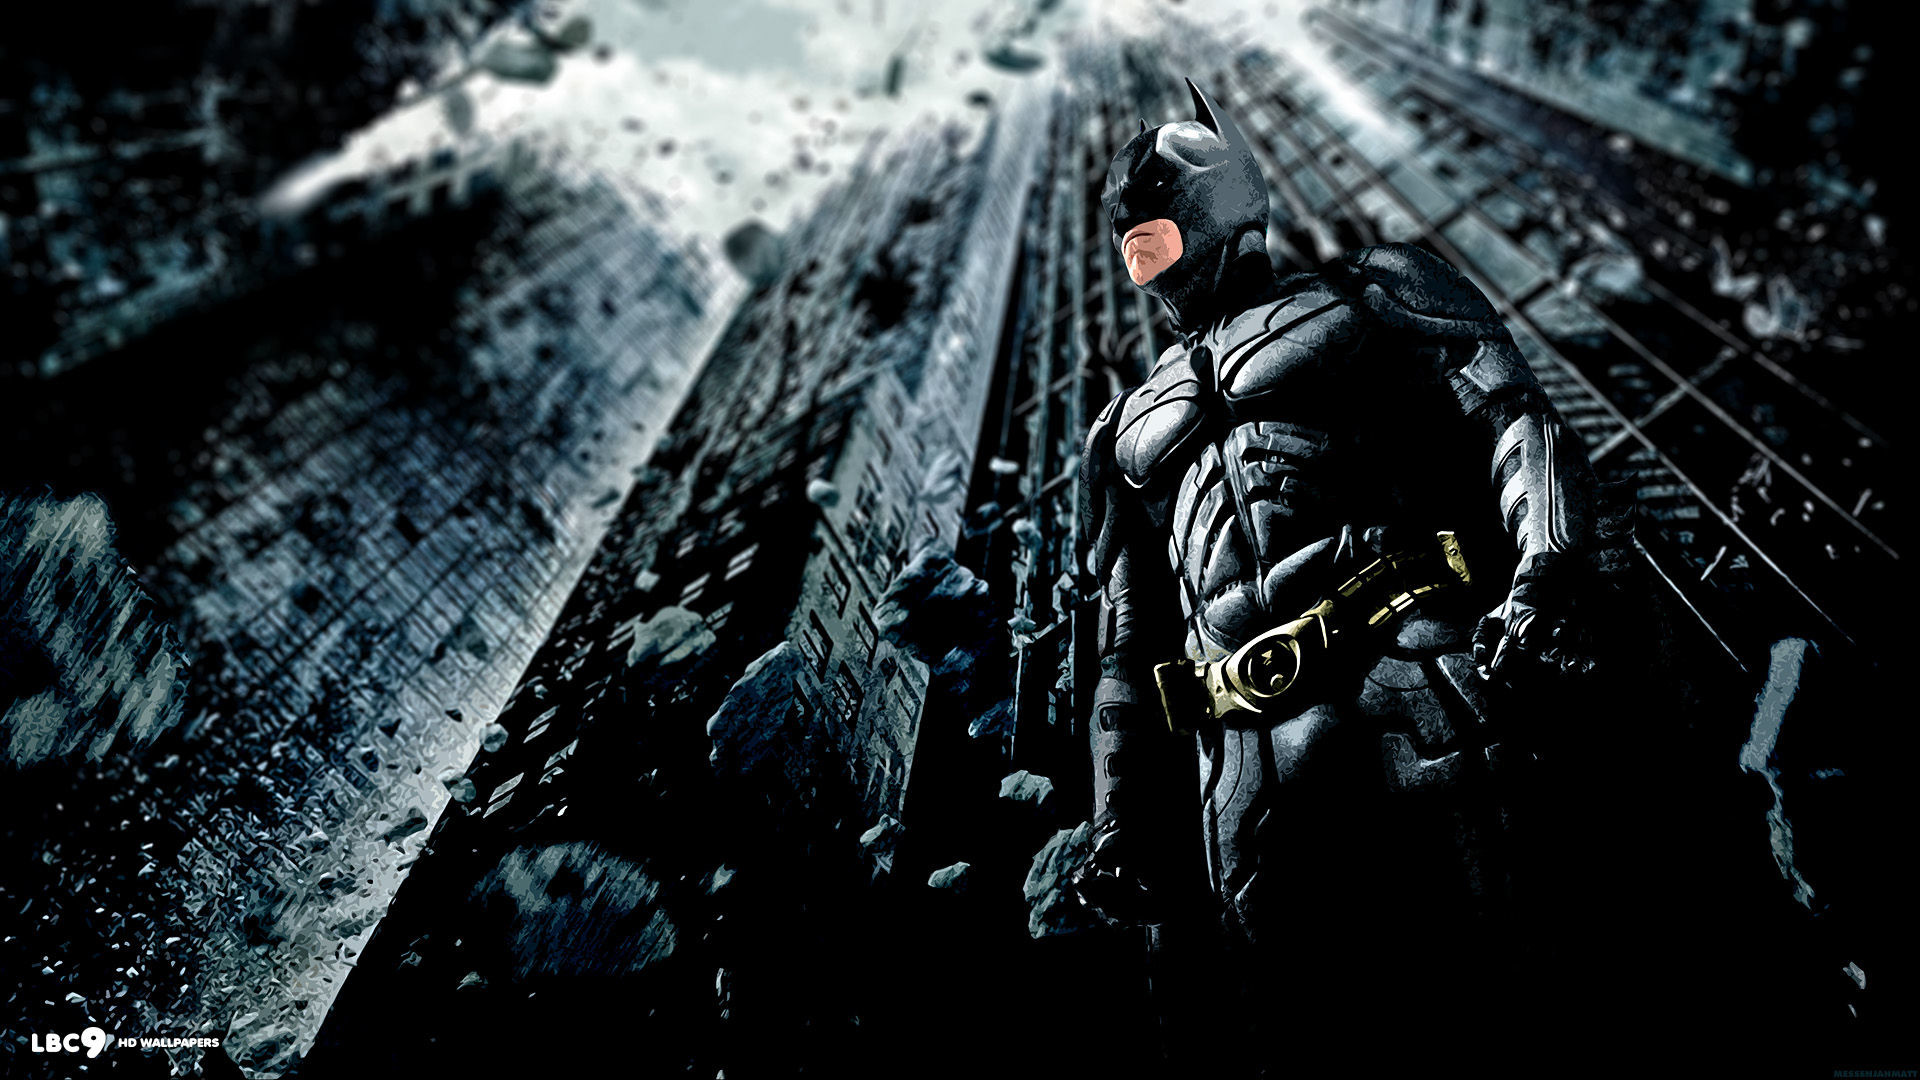 1920x1080 Batman The Dark Knight Rises HD Wallpaper